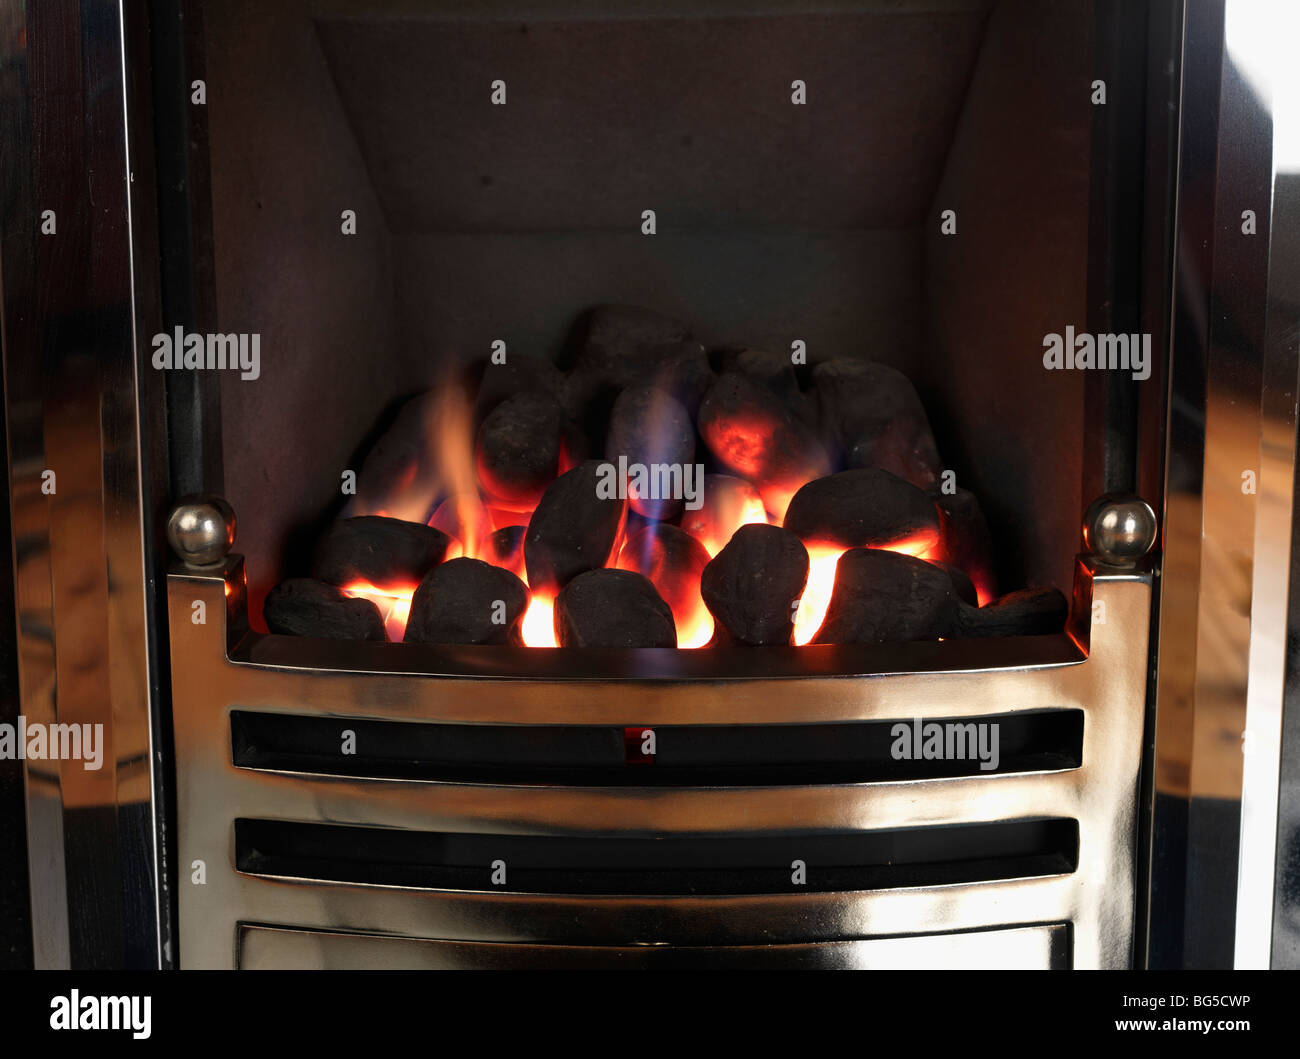 A coal effect gas fire. - Stock Image